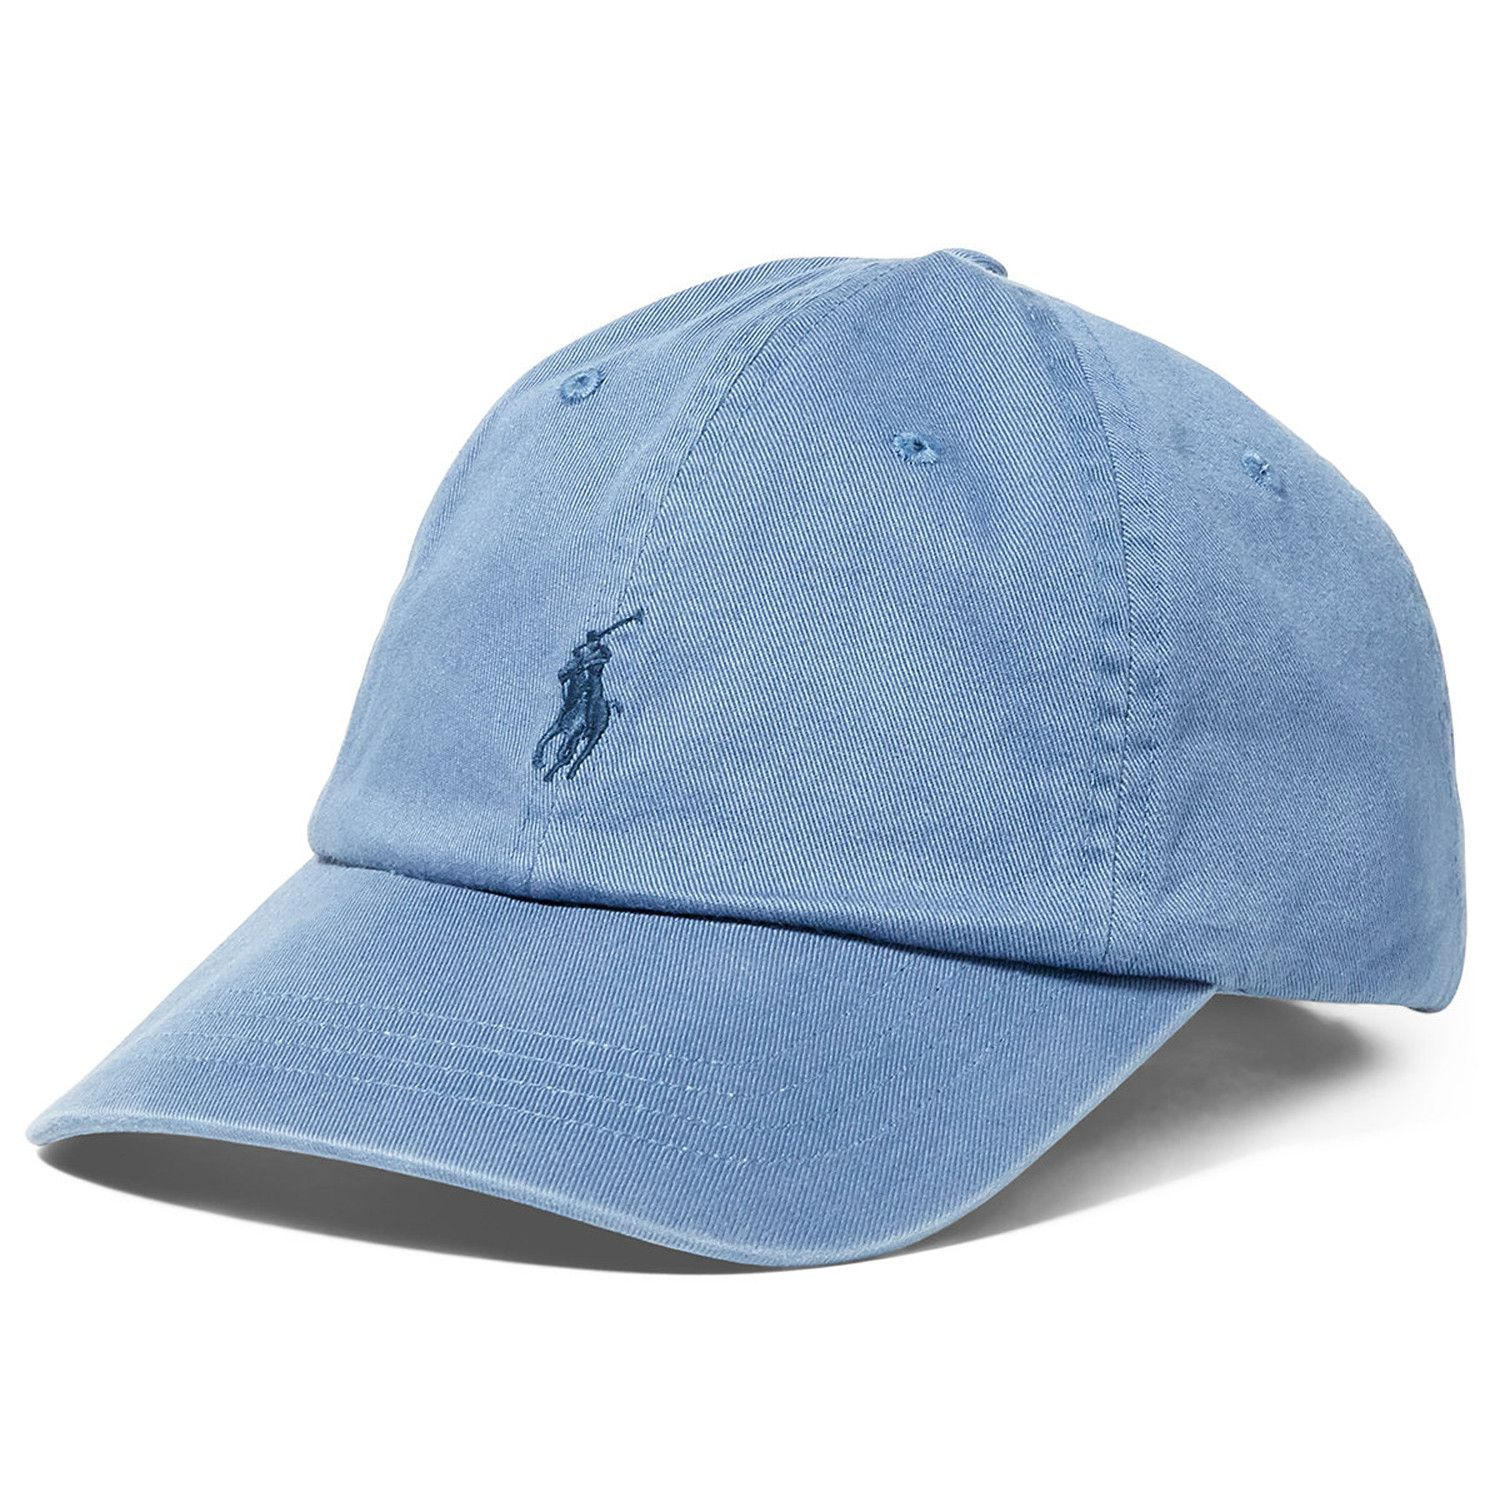 2c5d59475 POLO RALPH LAUREN Chino Cap | Carson Blue (710548524003) | Stuff ...